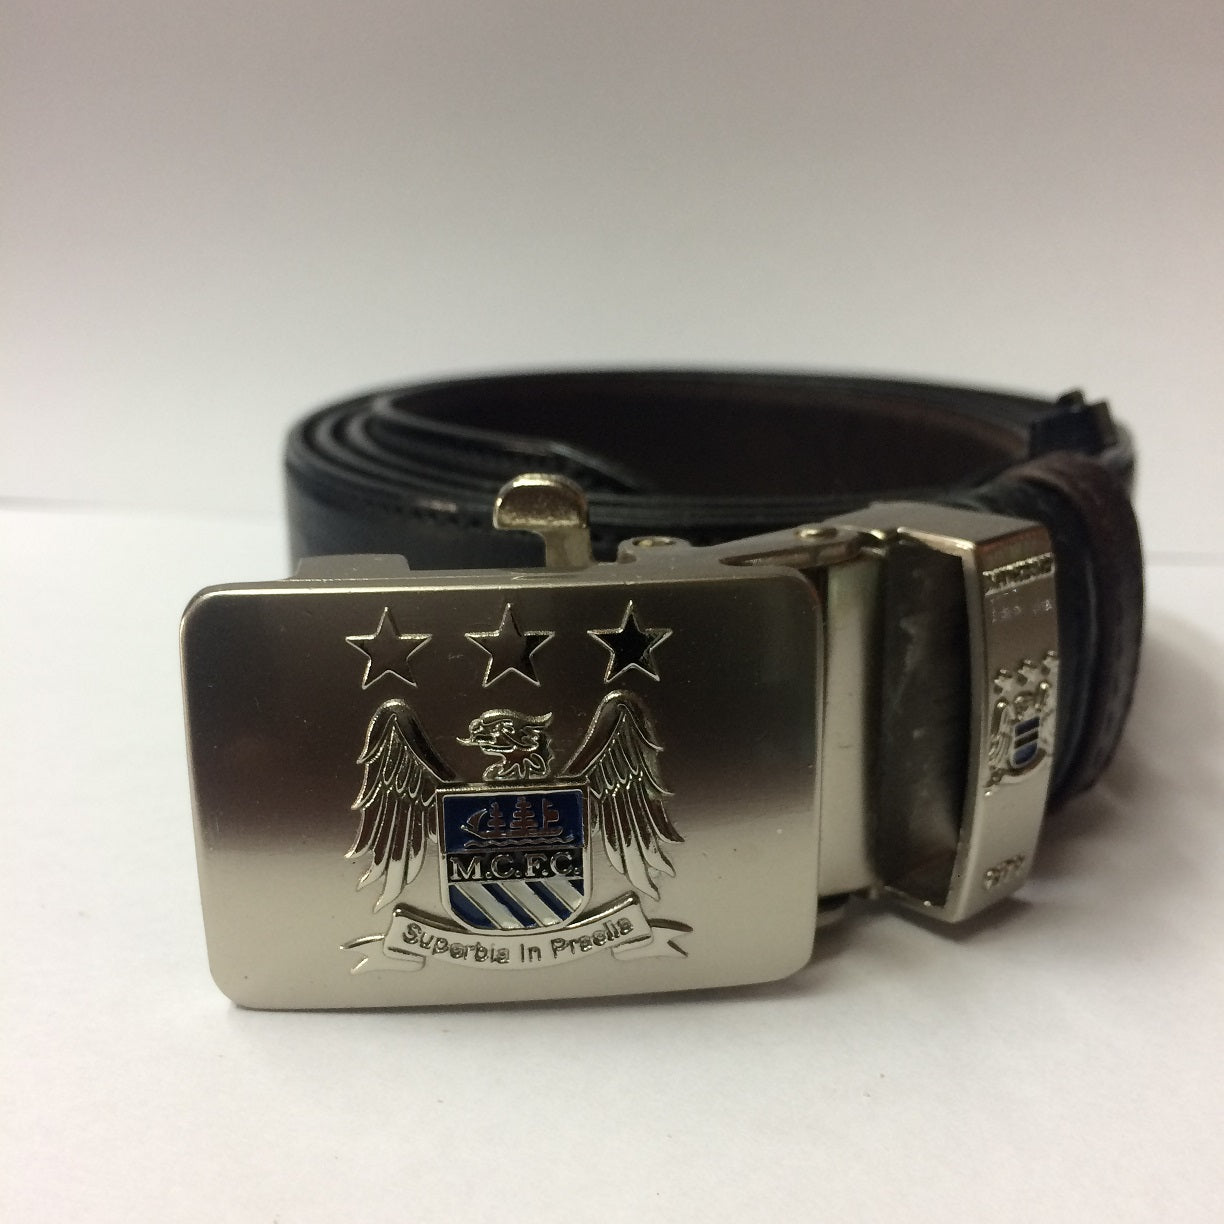 Manchester City Men's Dress Belt